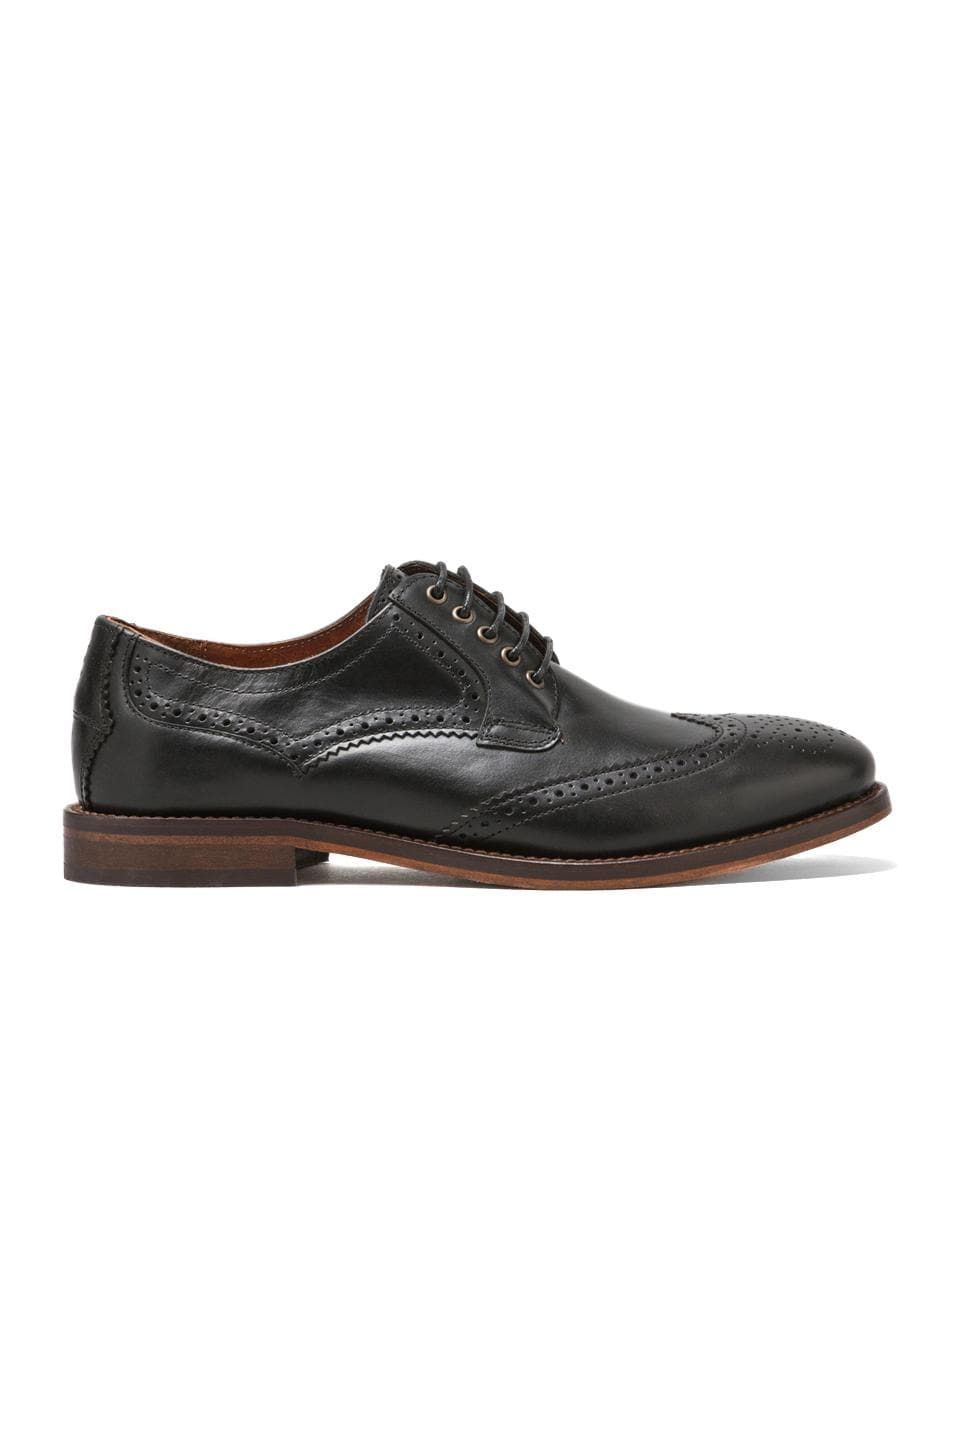 H by Hudson Haskin Lace Up Wing Tip in Black